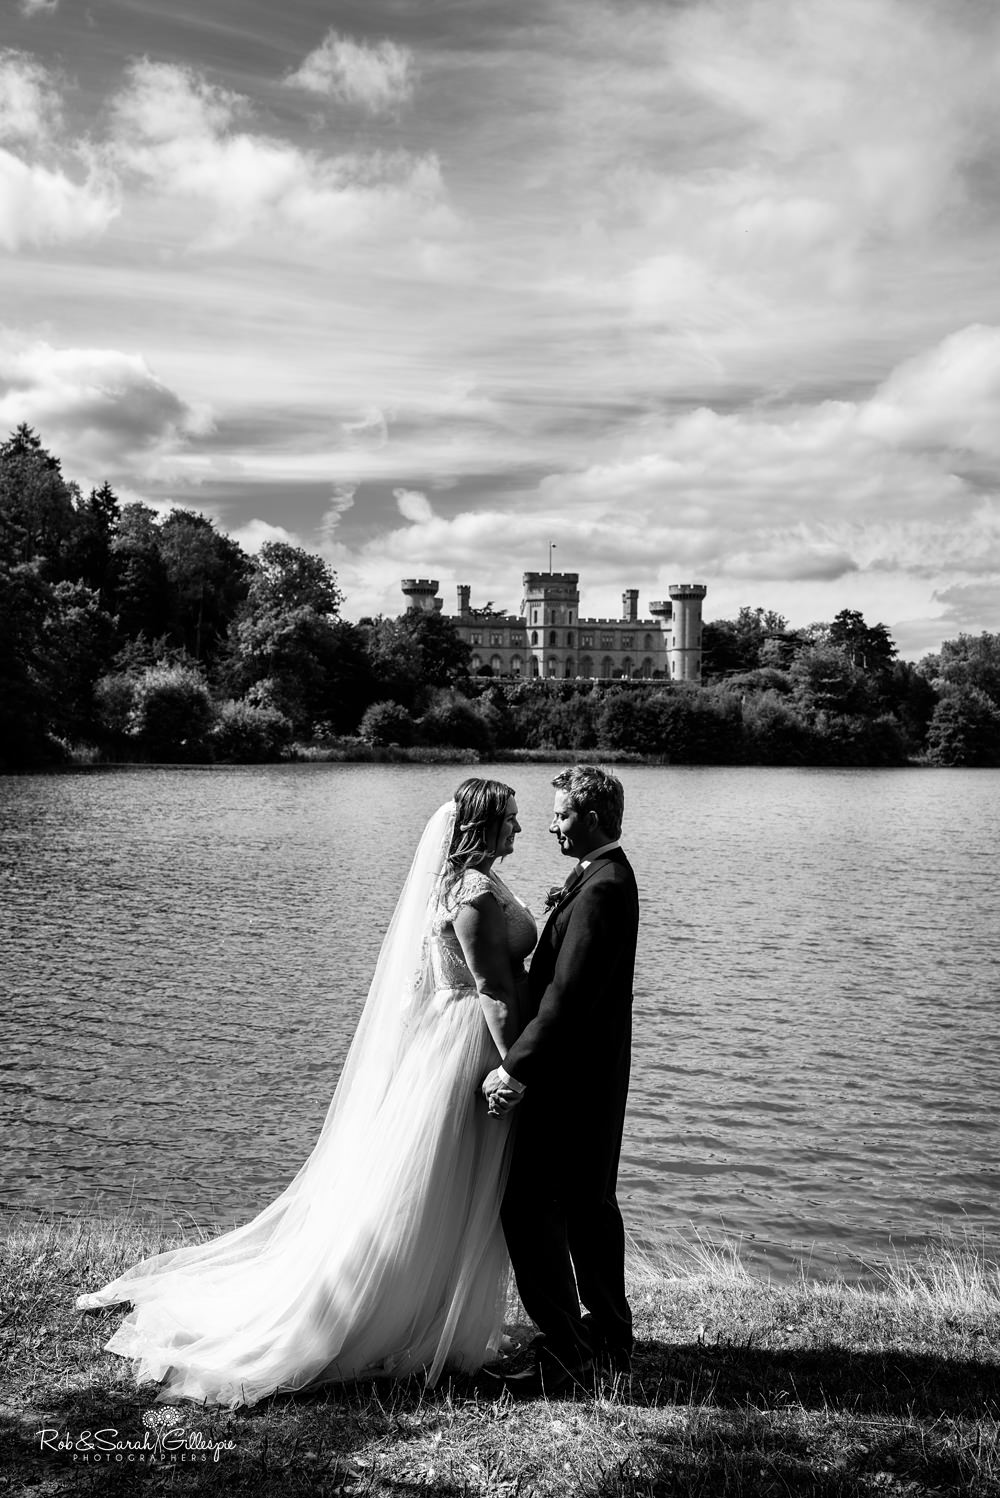 Bride and groom together on stairway at Eastnor Castle